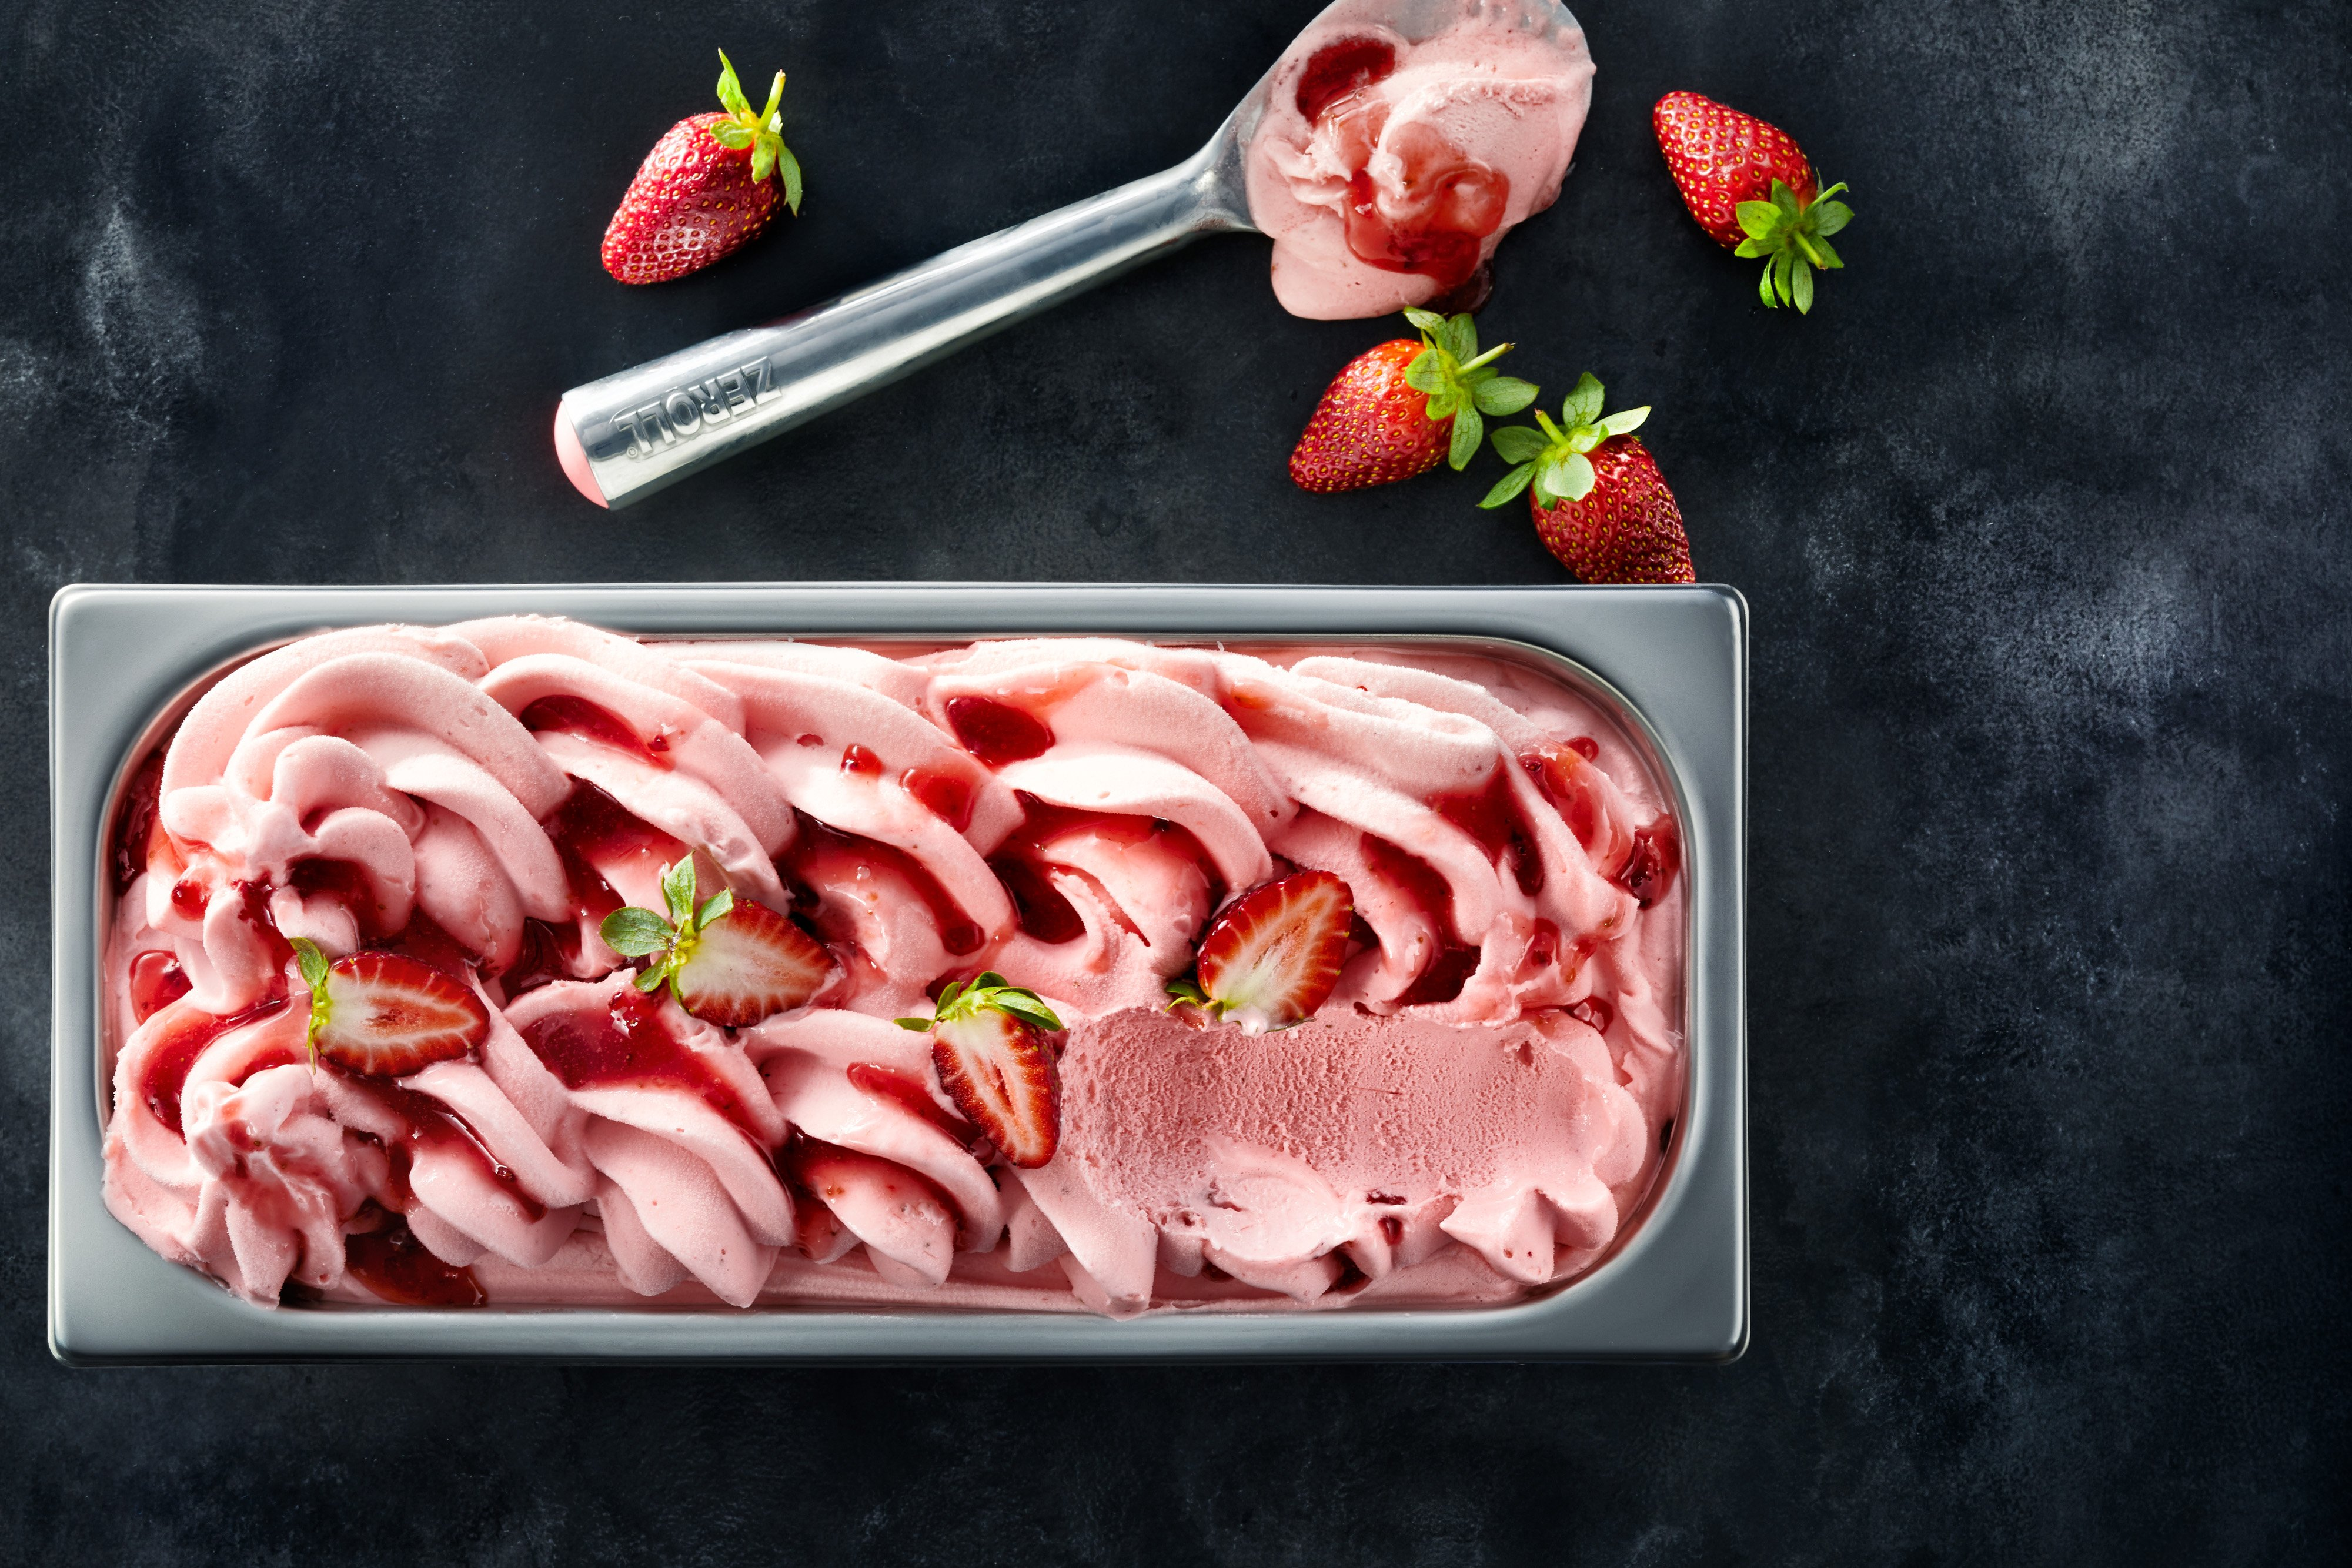 19075481-0484_strawaberry_T_new_tray